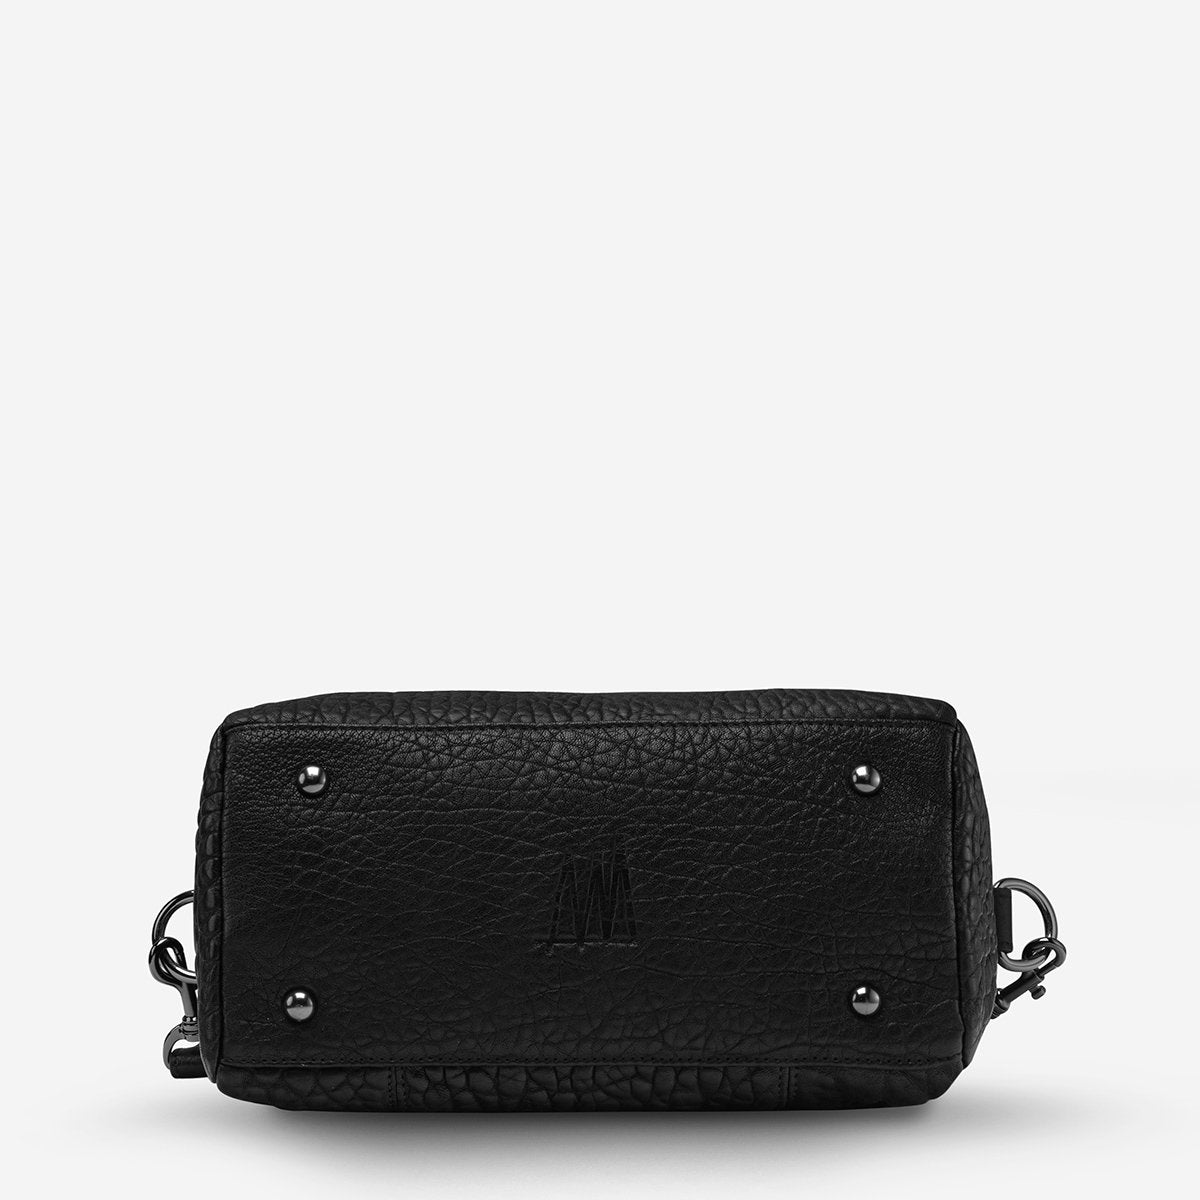 STATUS ANXIETY  //  Last Mountains Bag BLACK BUBBLE